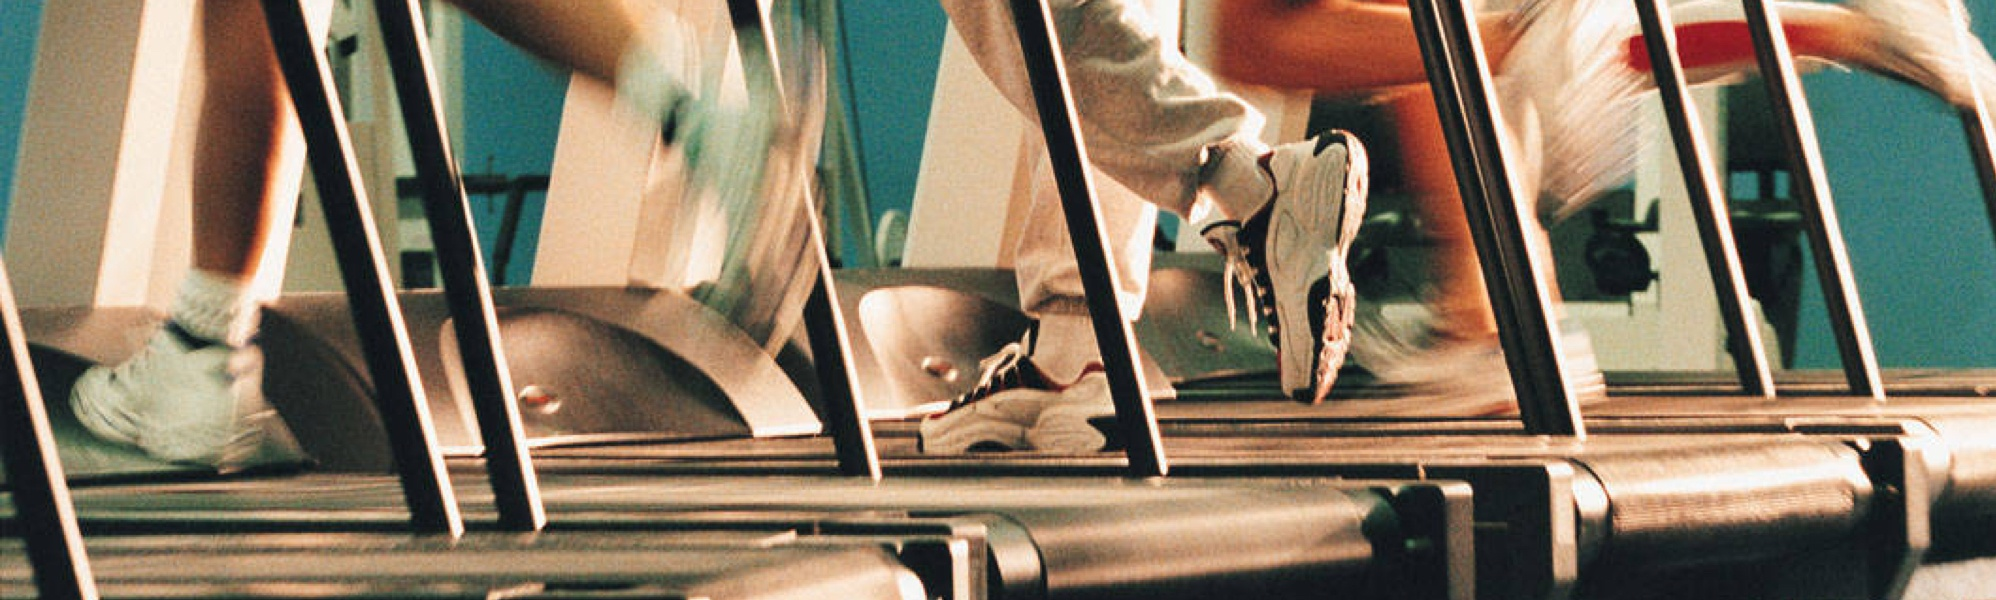 7 Best Treadmills For Sales